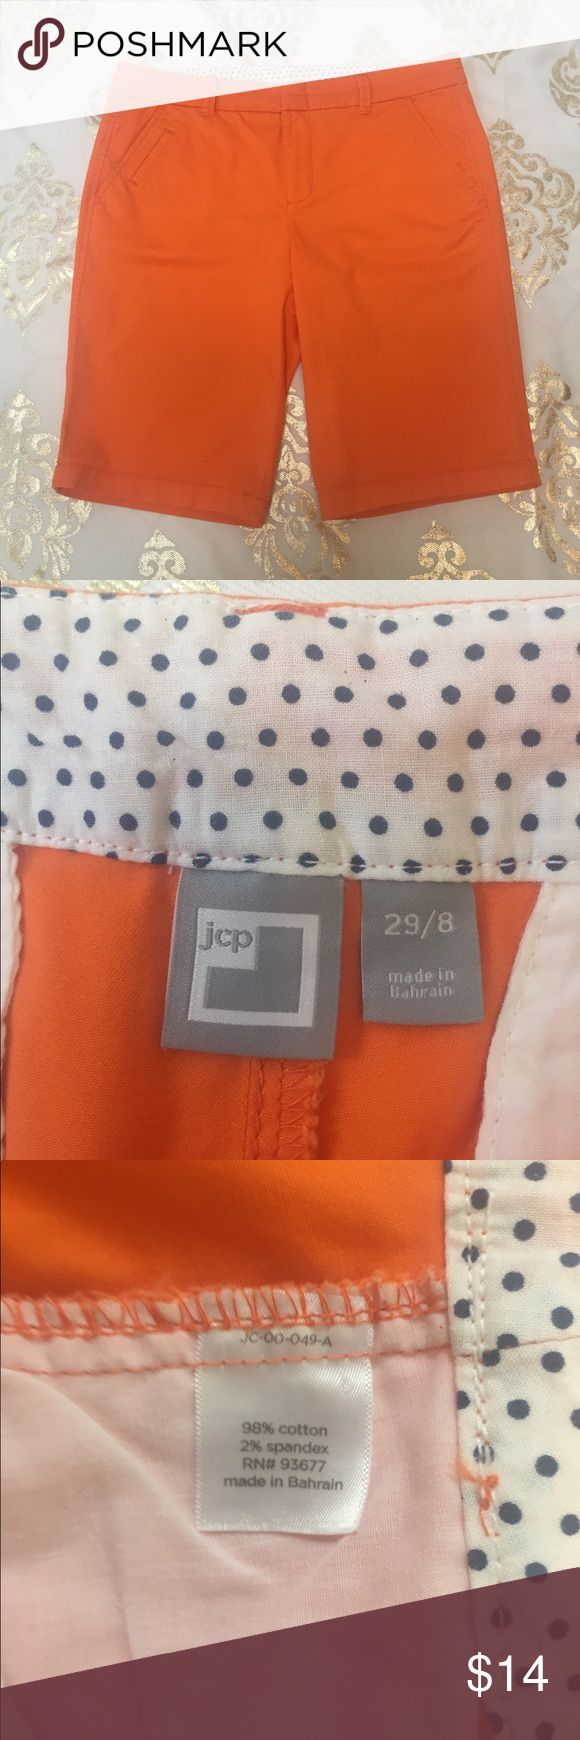 JC Penny Women's Size 29/8 Bermuda Casual Shorts Women's, JC Penny brand, bright orange, shorts! Size 29/8. They are in very good condition but the edges on the back buttons are a little worn (see pic)! They have two front pockets and two button back pockets! jcpenney Shorts Bermudas